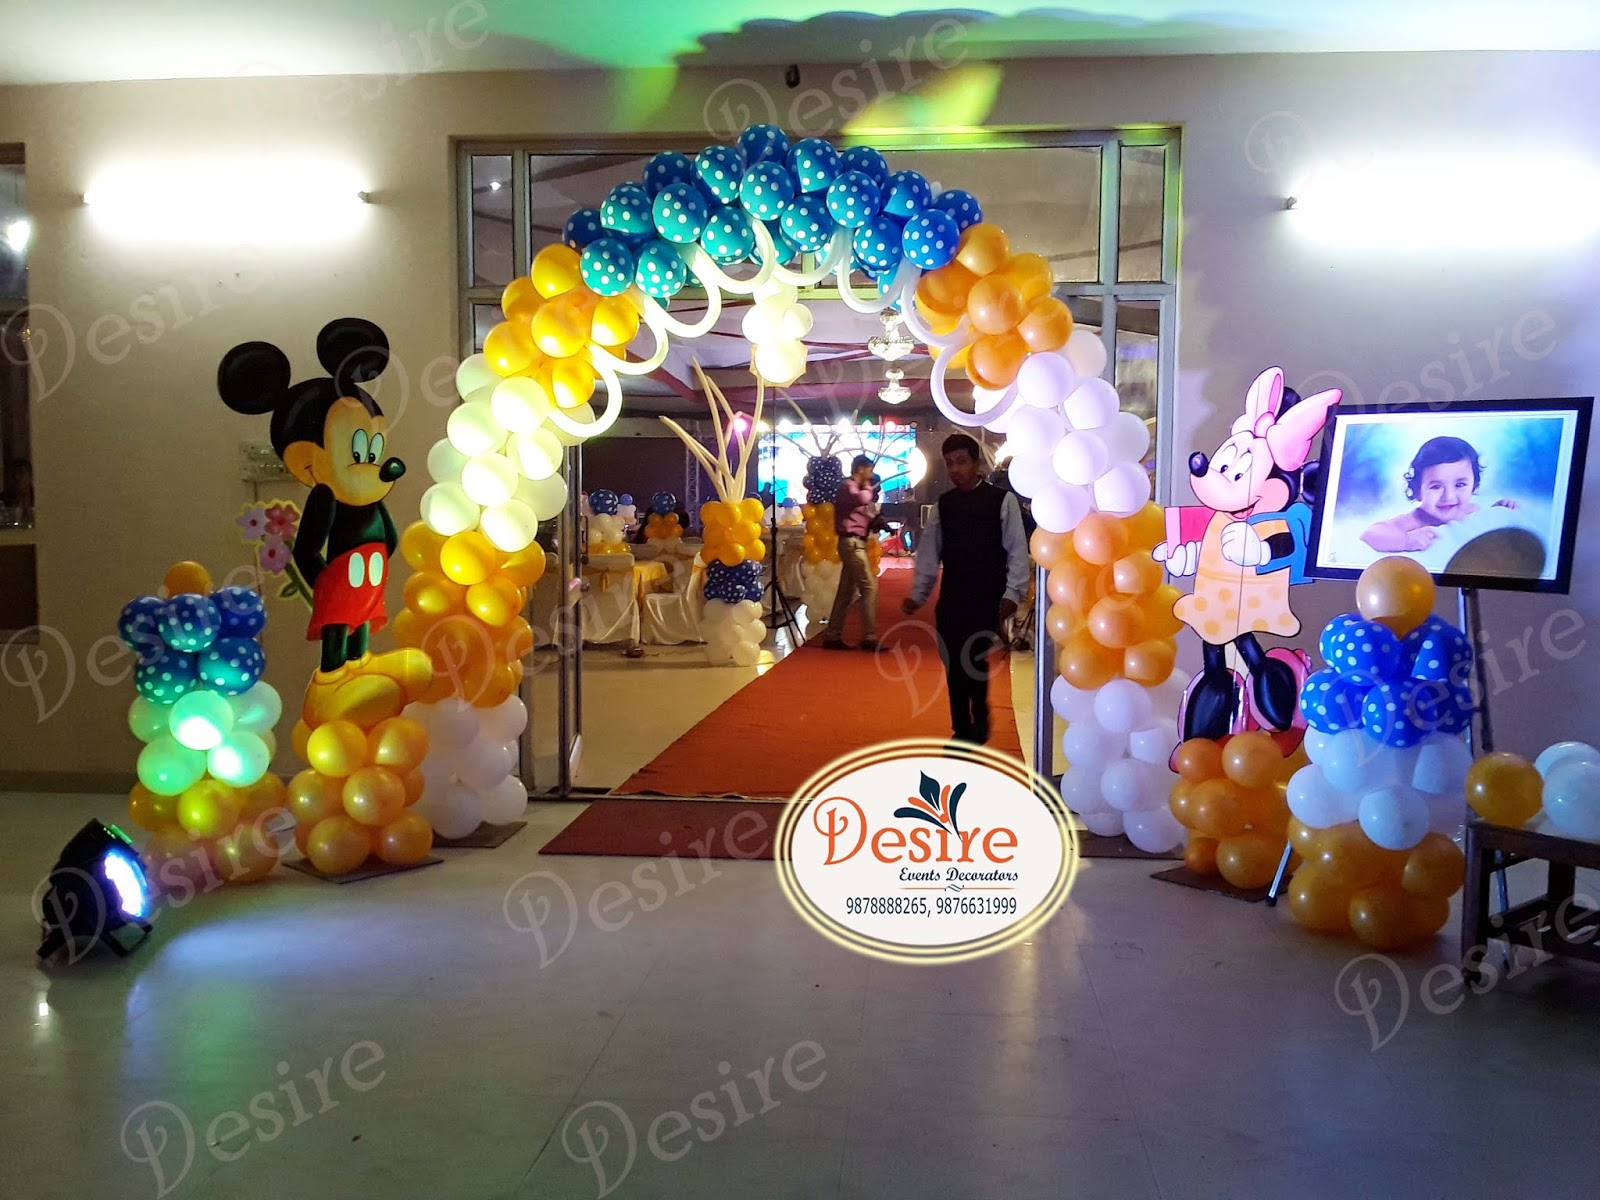 Desire events decorators jalandhar98788882659876631999 now now make your wedding memorable with affordable prices weddings decoration theme parties balloons decoration events decoration car decoration junglespirit Gallery